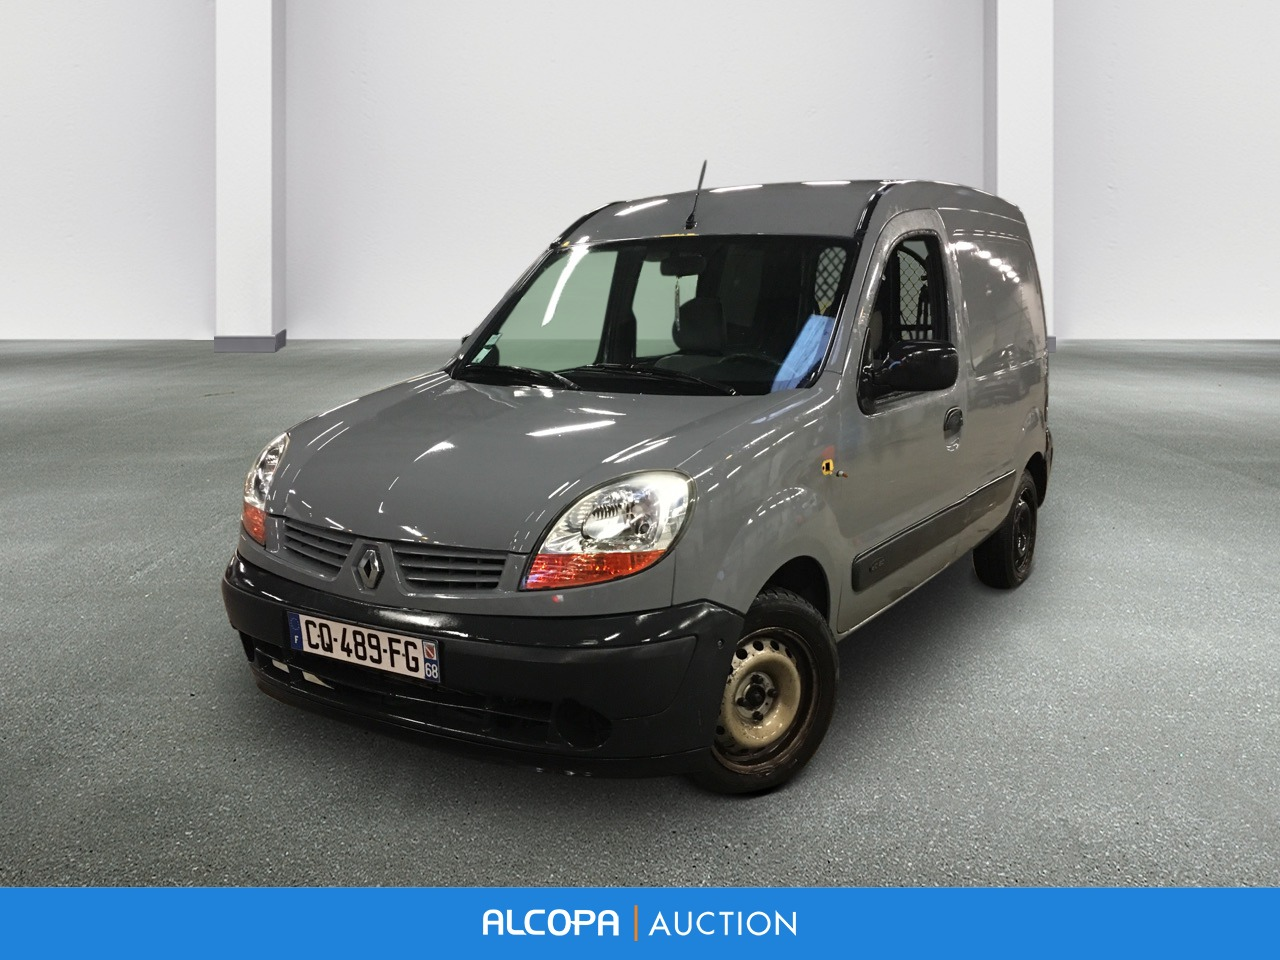 renault kangoo express kangoo express 1 5 dci 60 confort alcopa auction. Black Bedroom Furniture Sets. Home Design Ideas